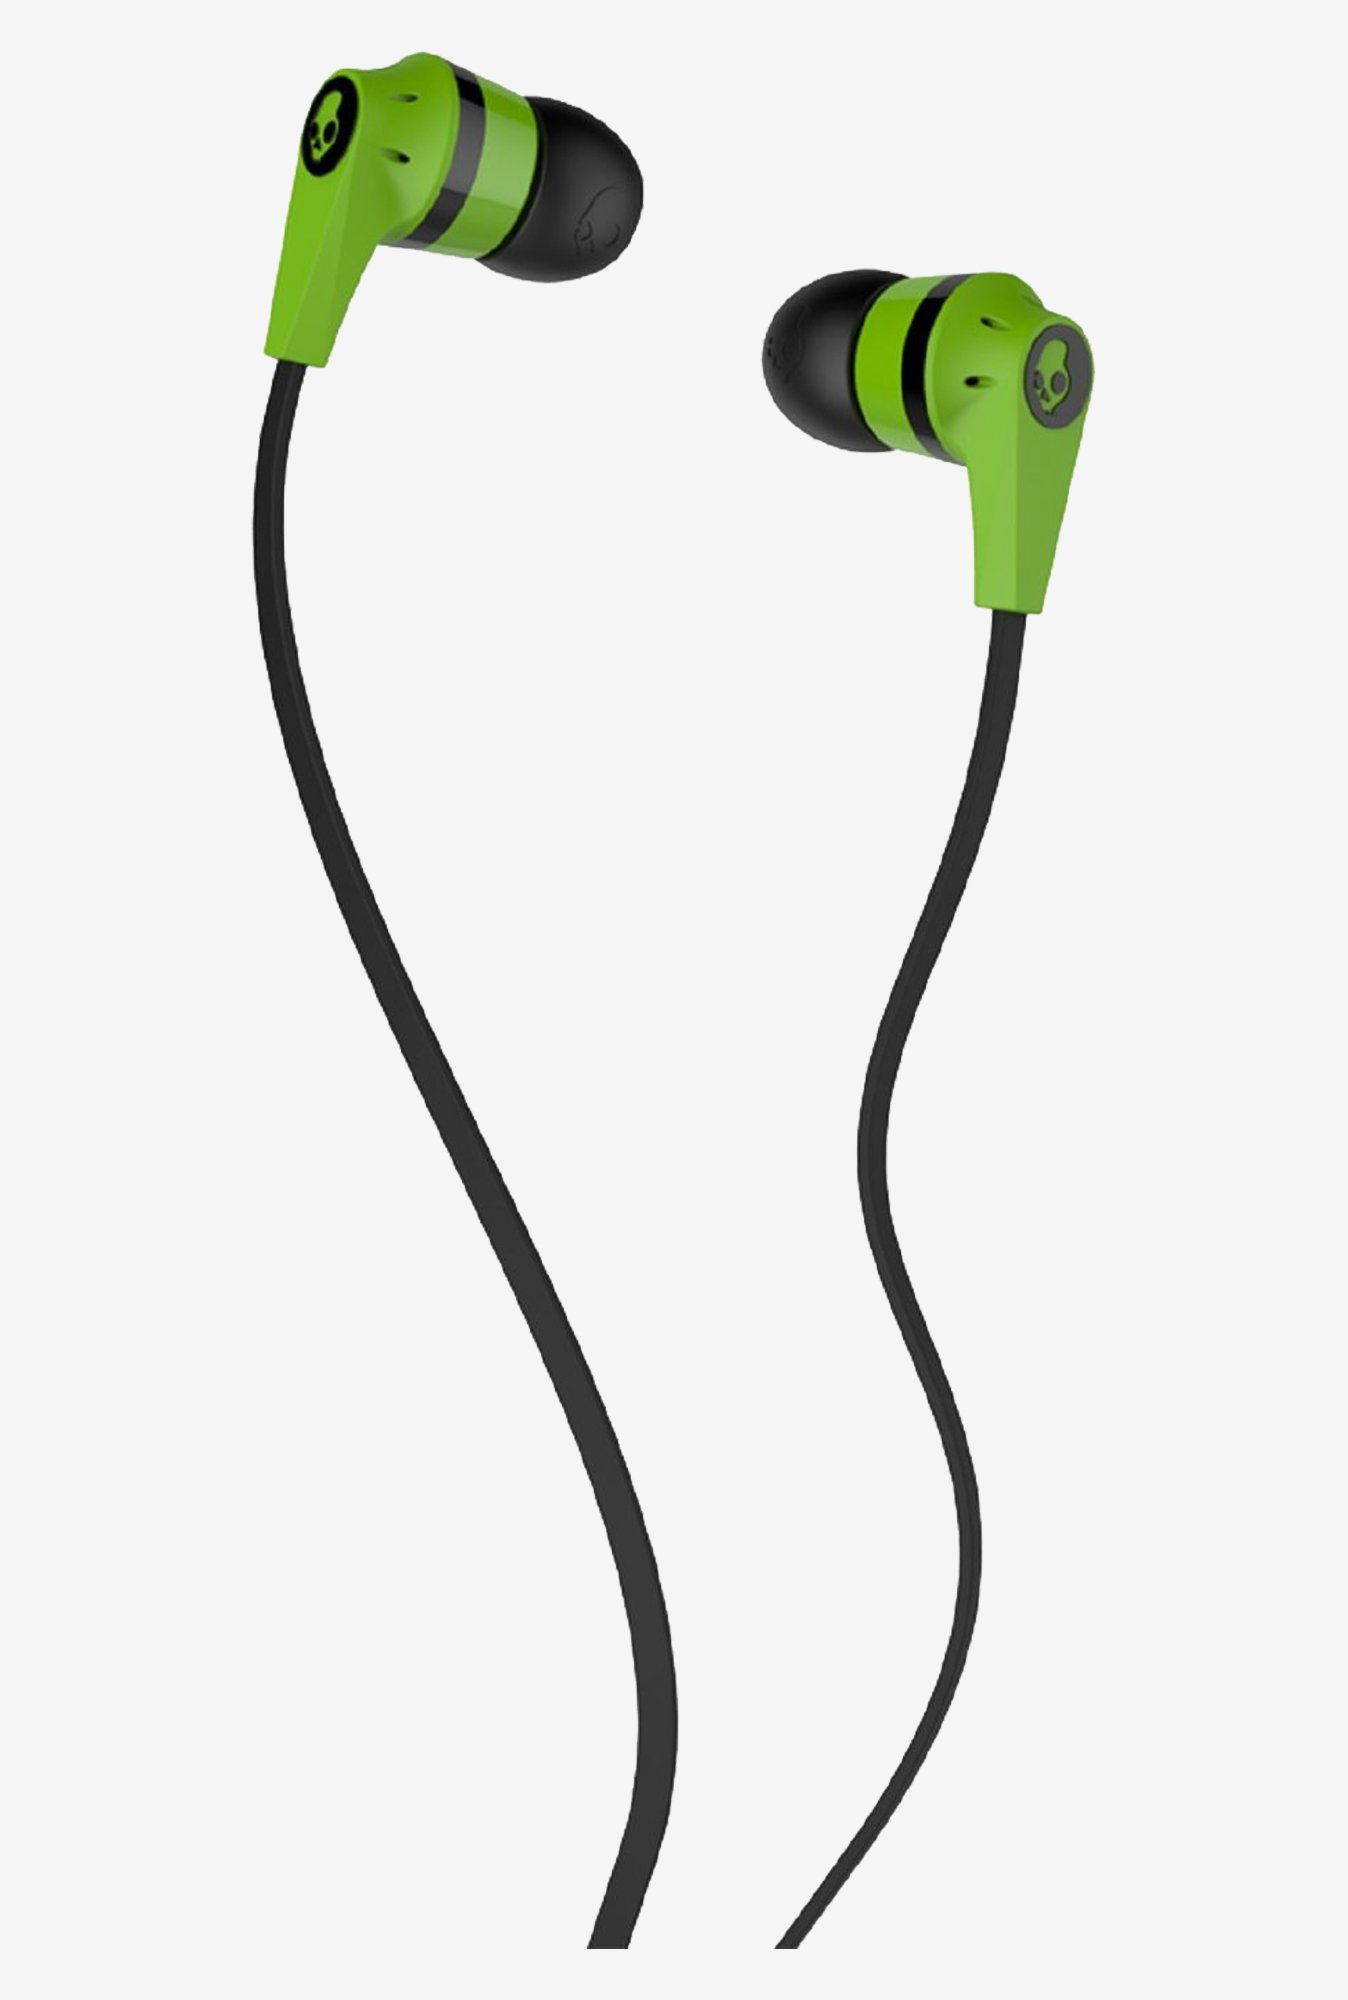 Skullcandy S2IKFZ-323 In the Ear Headphone (Lime)